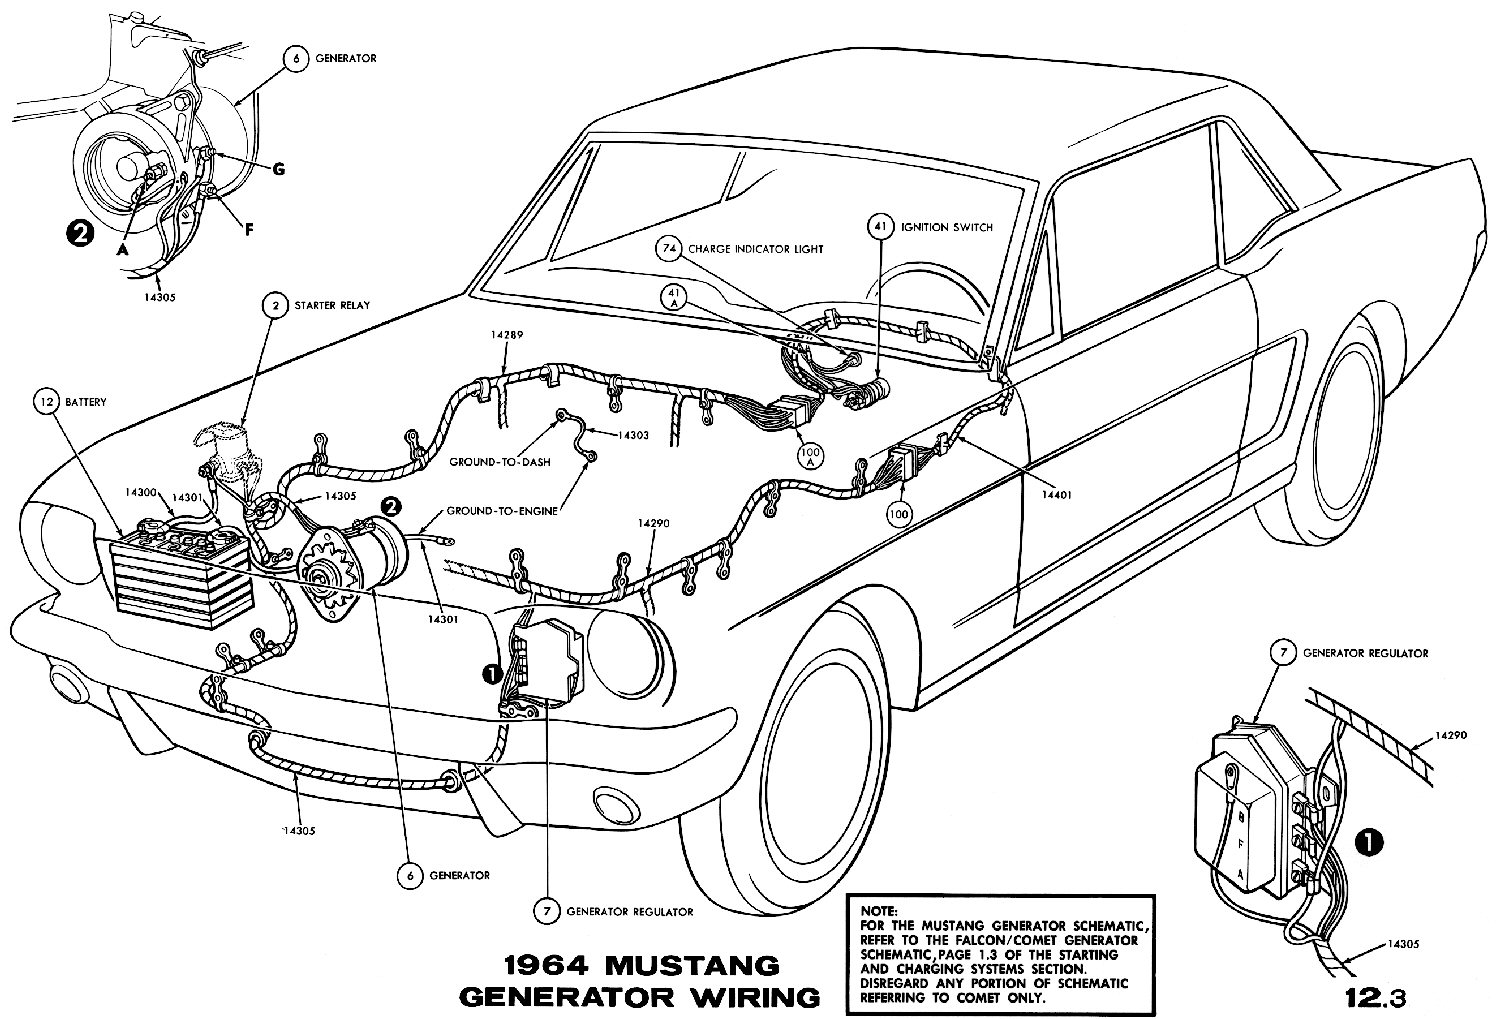 1964 Mustang Wiring Diagrams Average Joe Restoration Ford Schematics Sm1964f Generator Pictorial Or Schematic